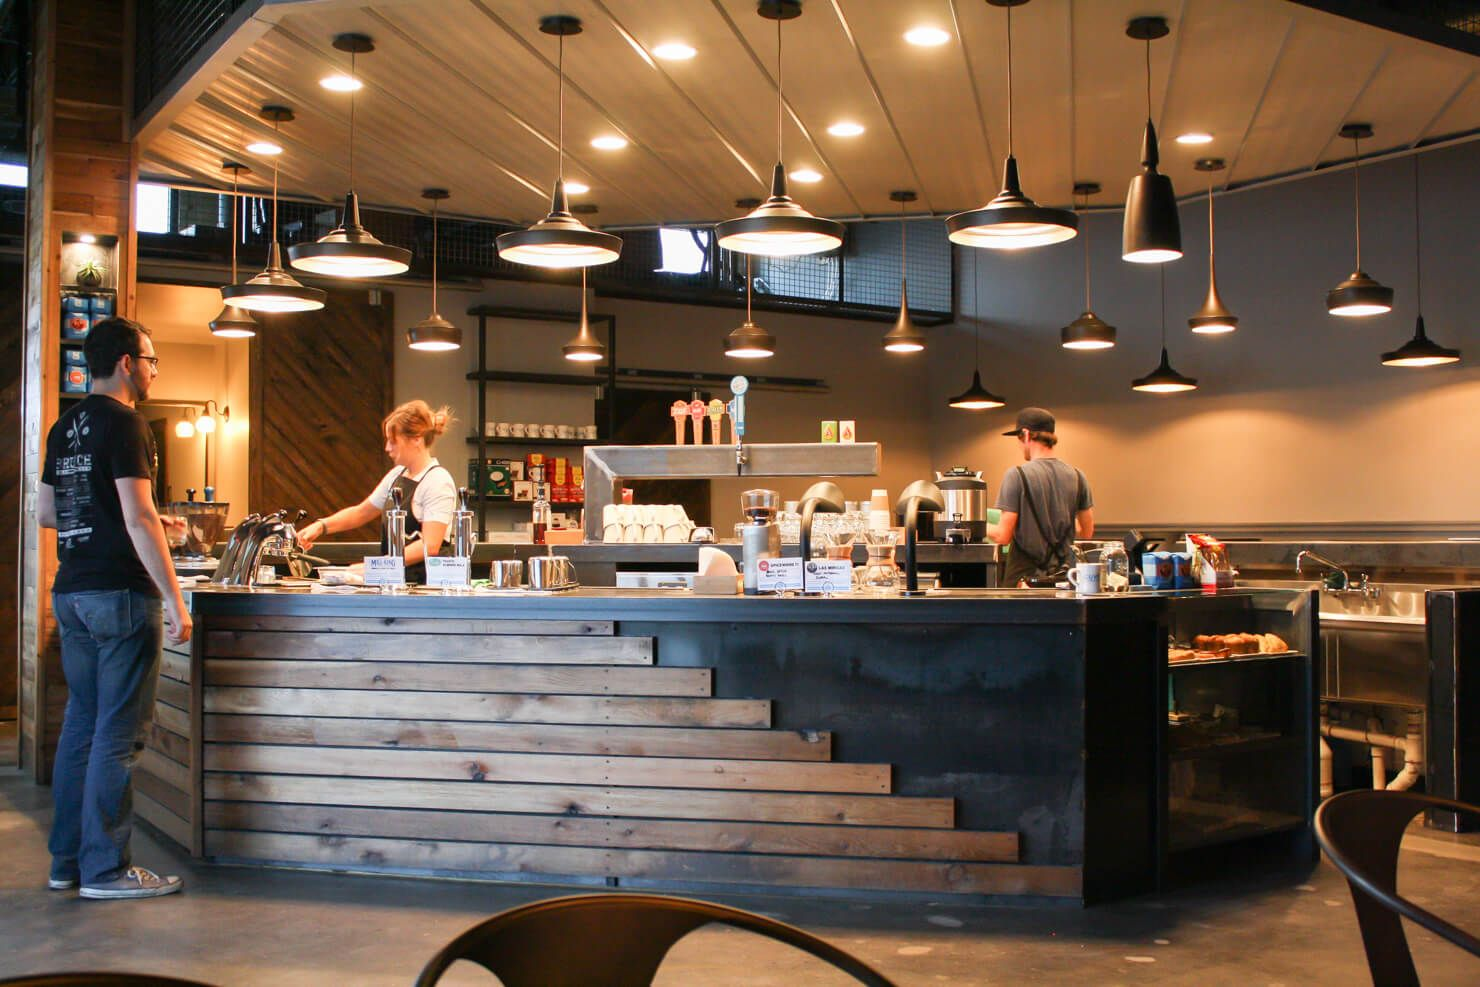 Astonishing Coffee Shop Design Trends Creative A Wall Ideas Decor Of Coffee Shop Design Ideas Resume Format Pdf Pictures Trends 2017 How To Coffee Shops Interior Coffee Decor Coffee Shop Bar